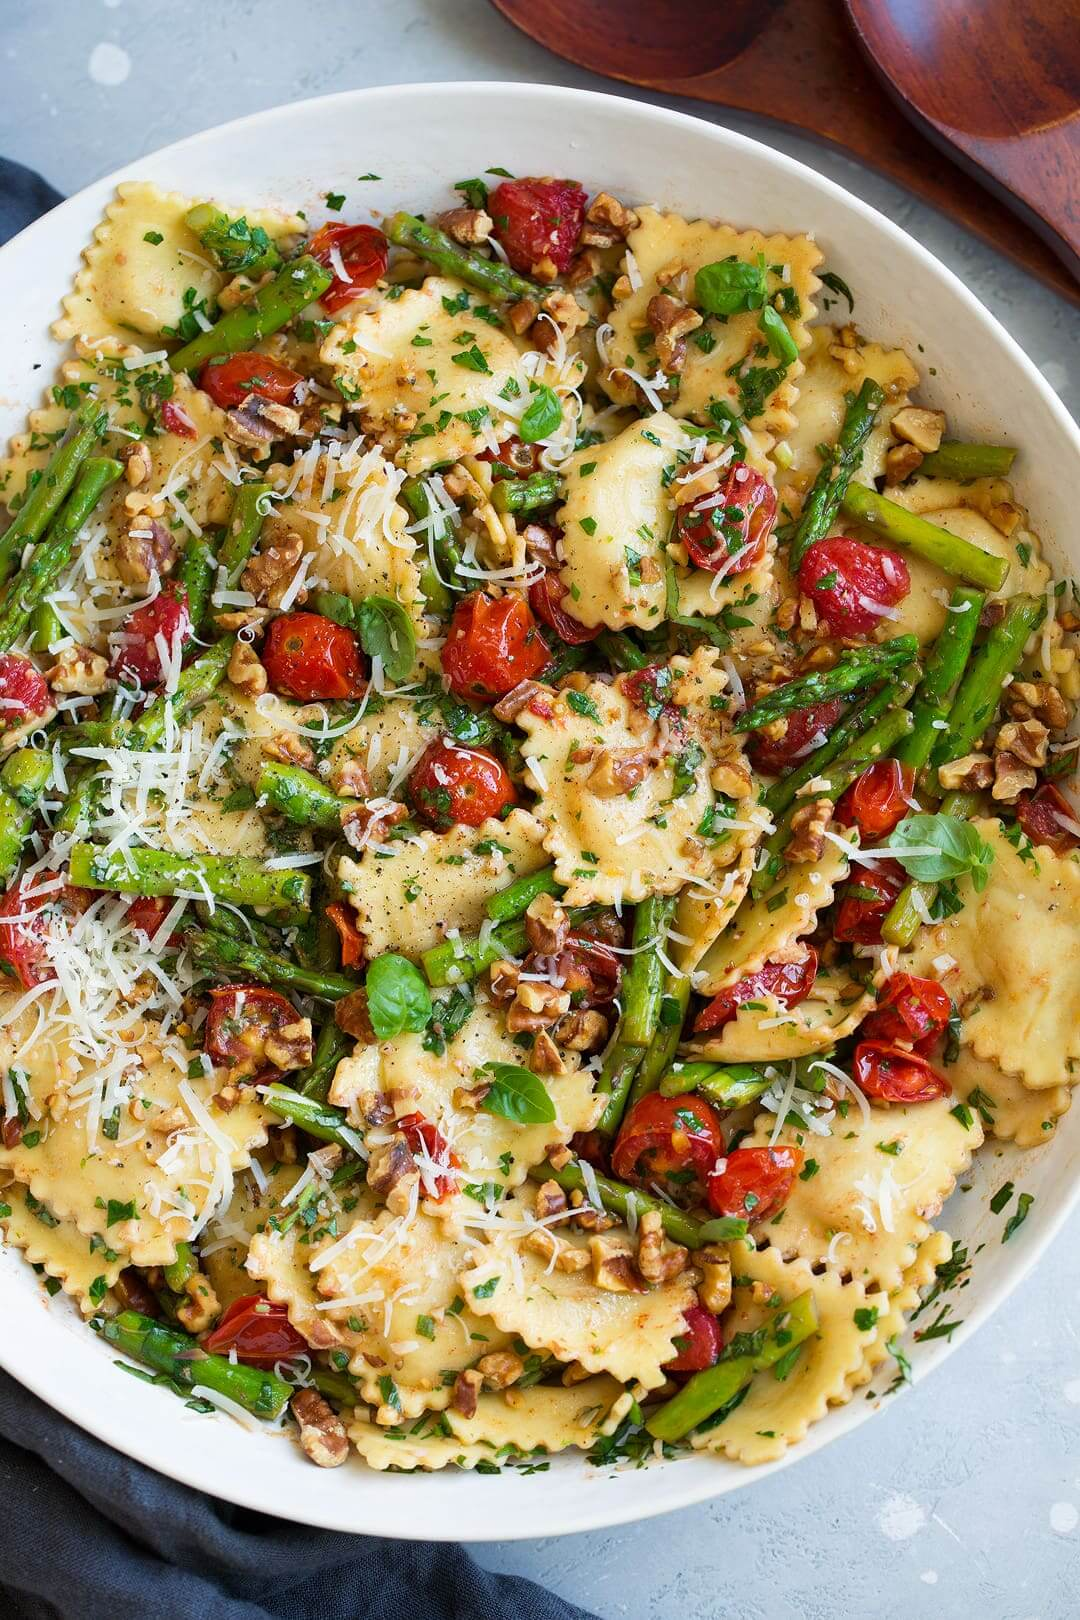 5. Ravioli with Tomatoes Asparagus Garlic and Herbs